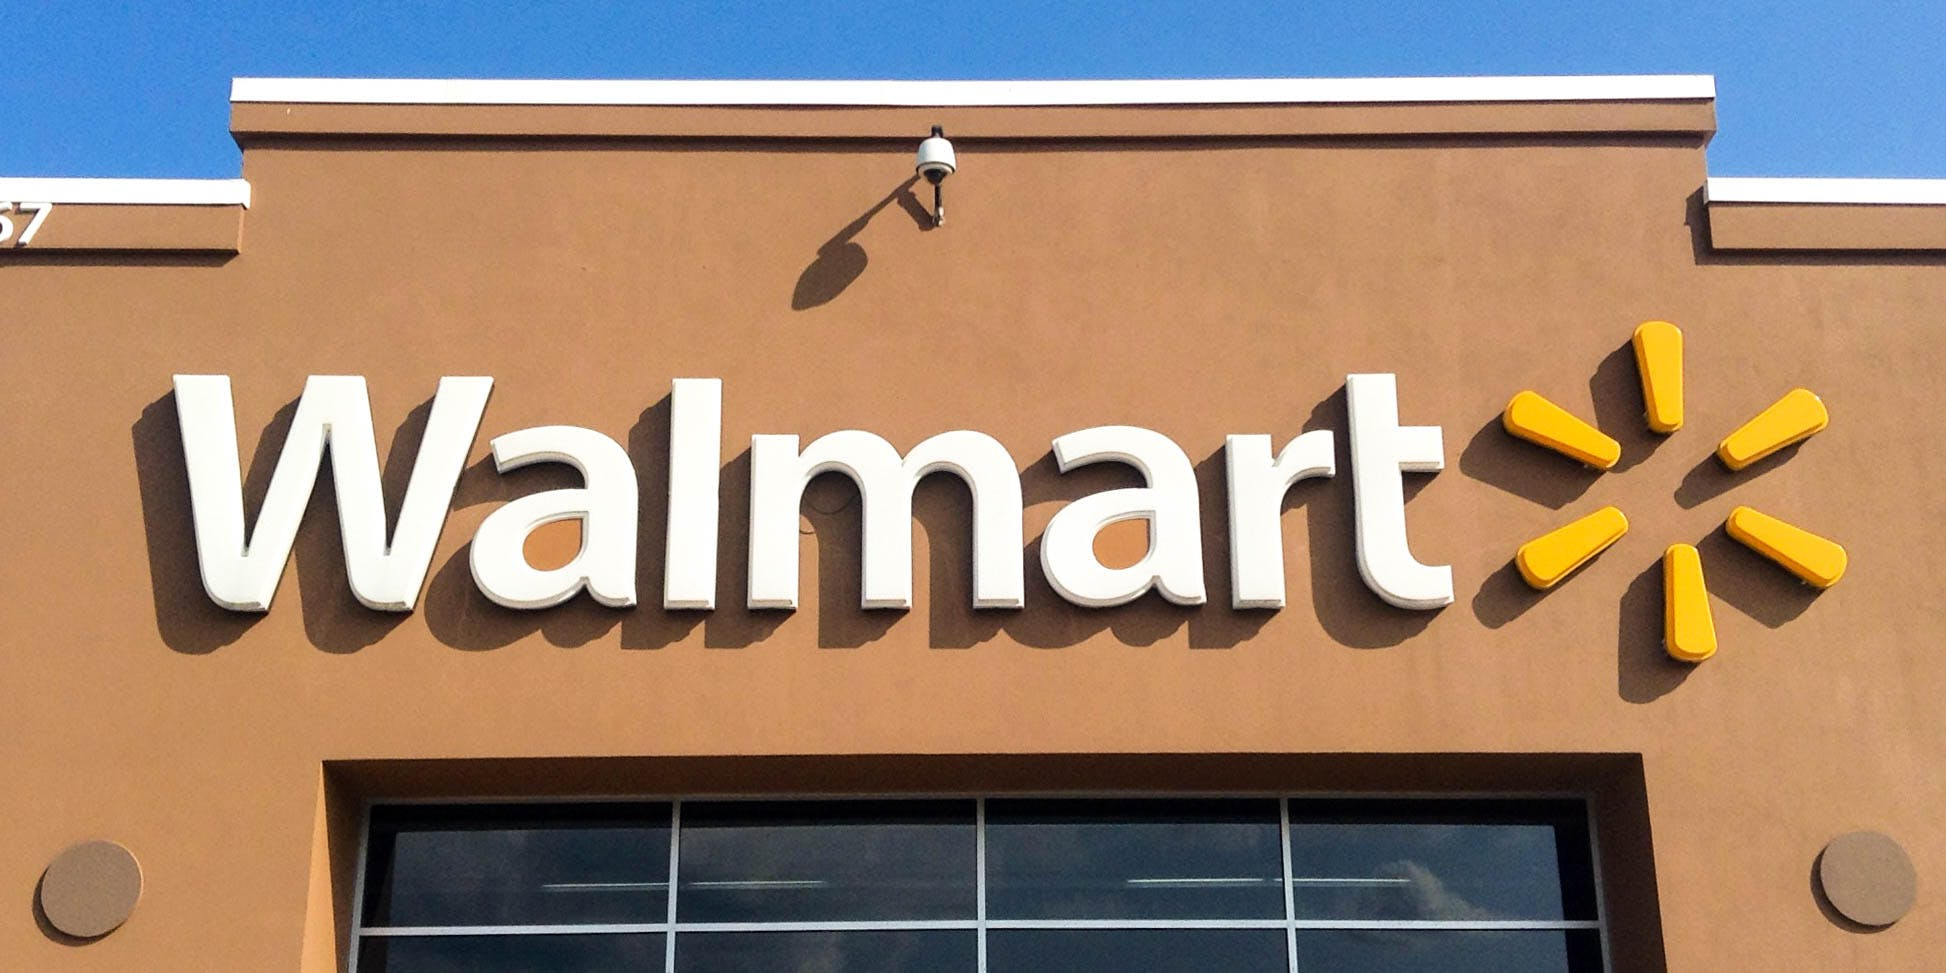 Walmart Considers Selling Cannabis-Infused Products. Here, the exterior of a walmart is shown